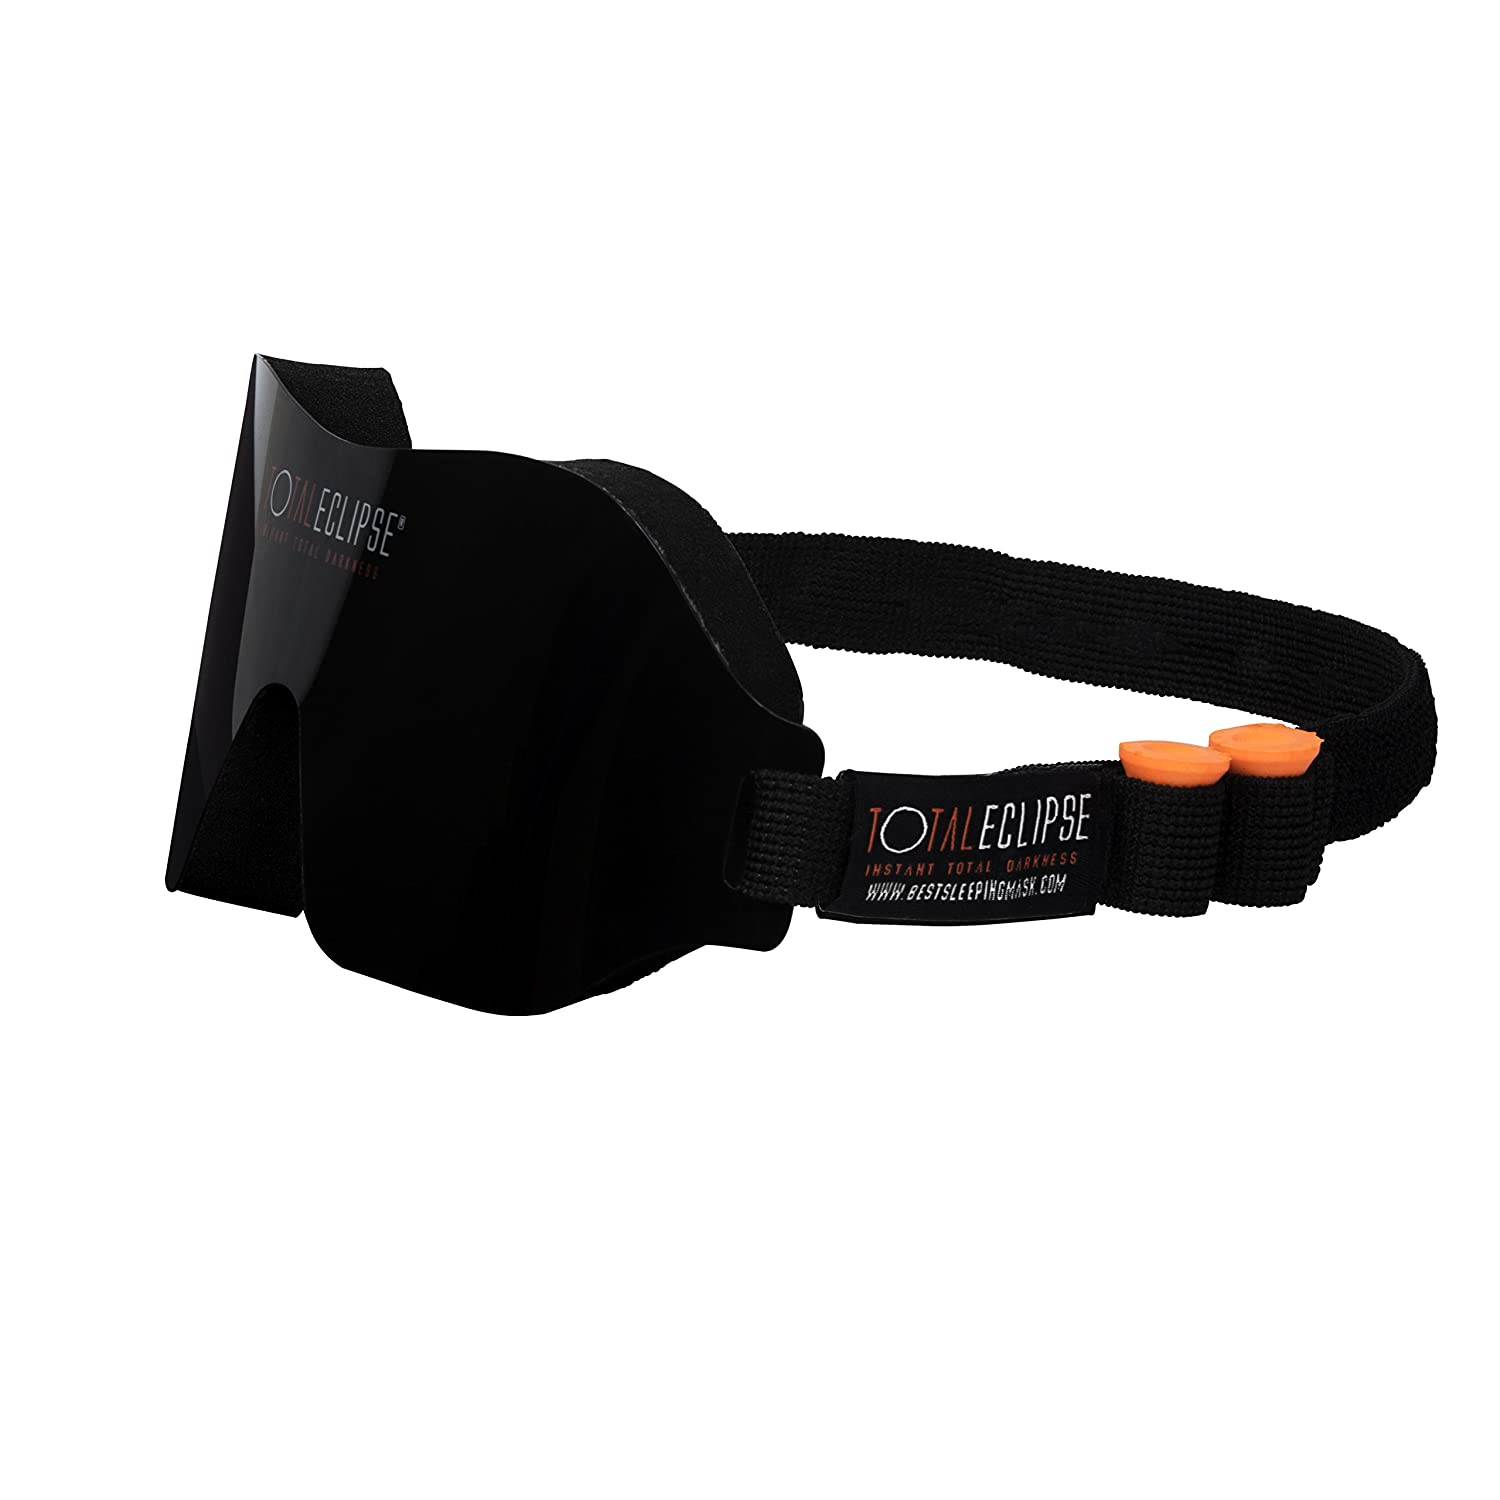 Total Eclipse - Instant Total Darkness - Sleep Mask with Adjustable Strap and Free Earplugs